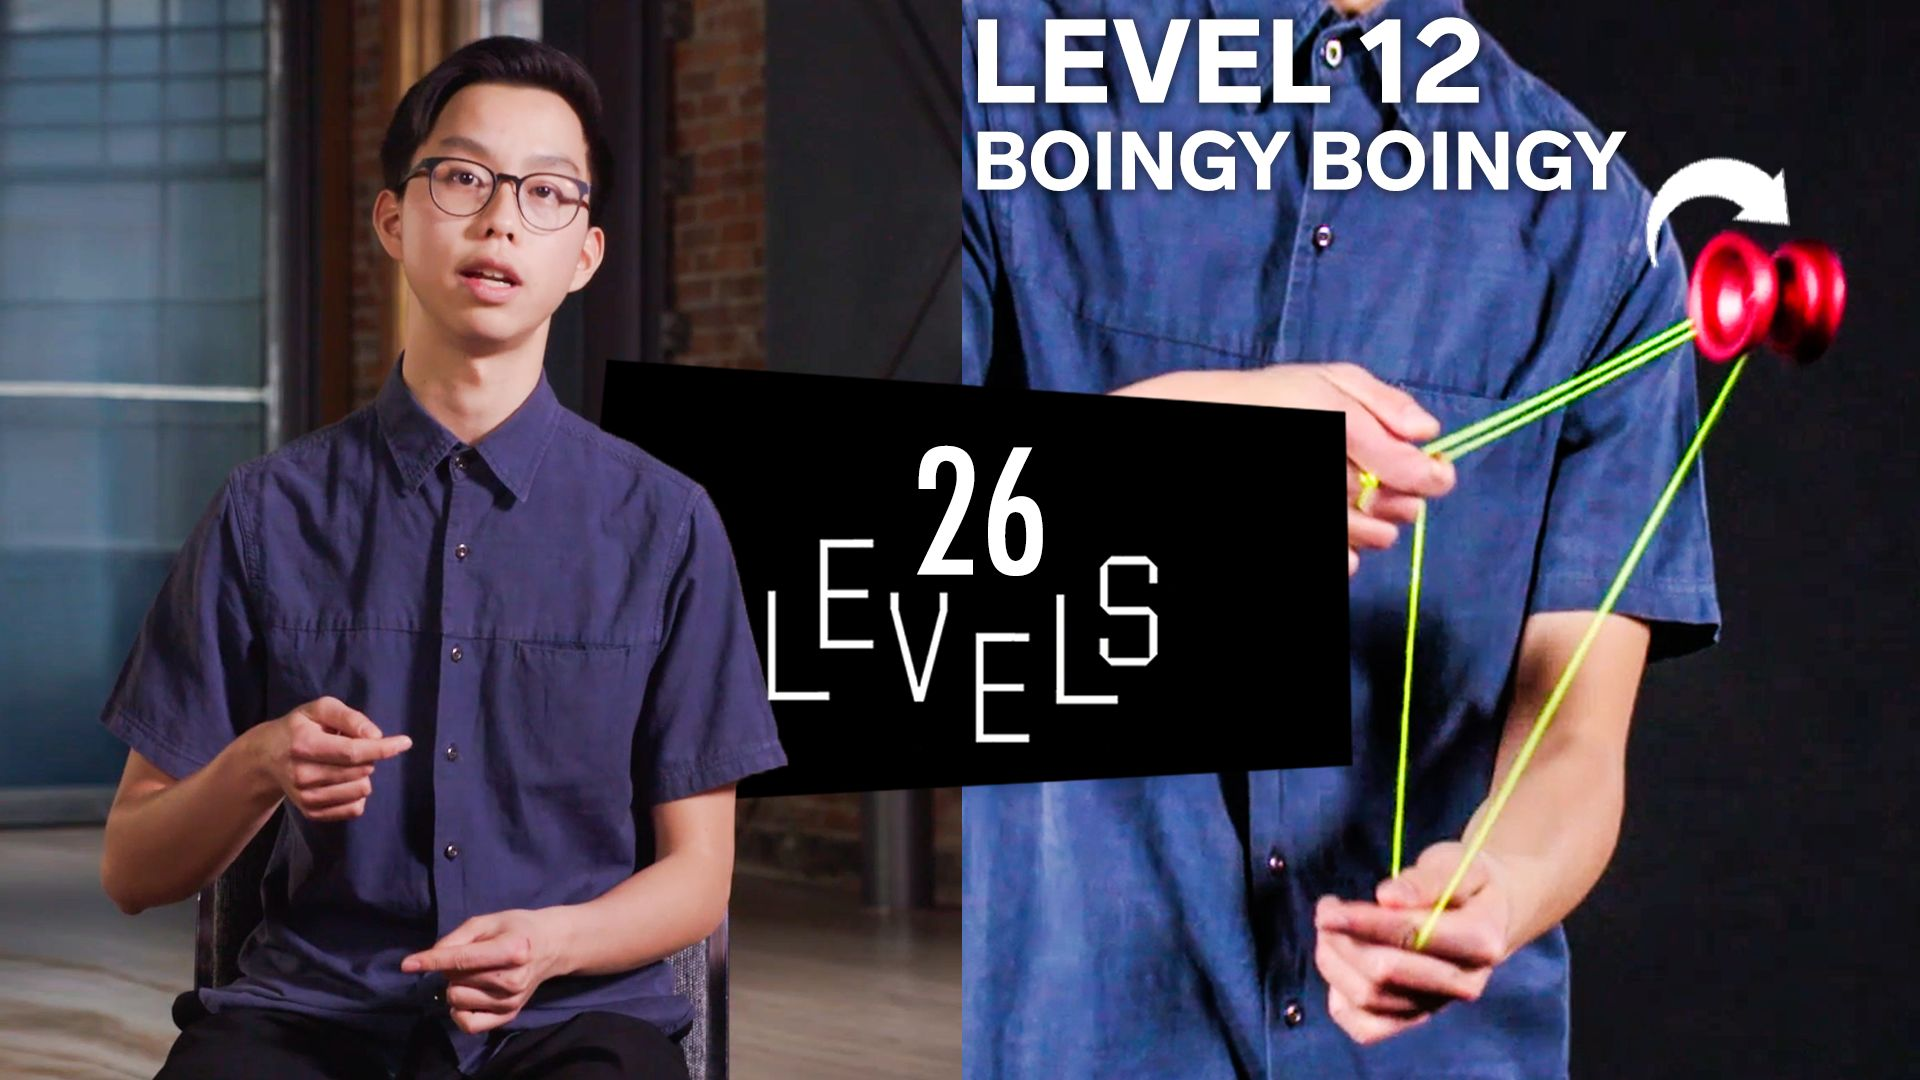 Watch 20 Levels of Yo Yo Tricks Easy to Complex   Levels   WIRED